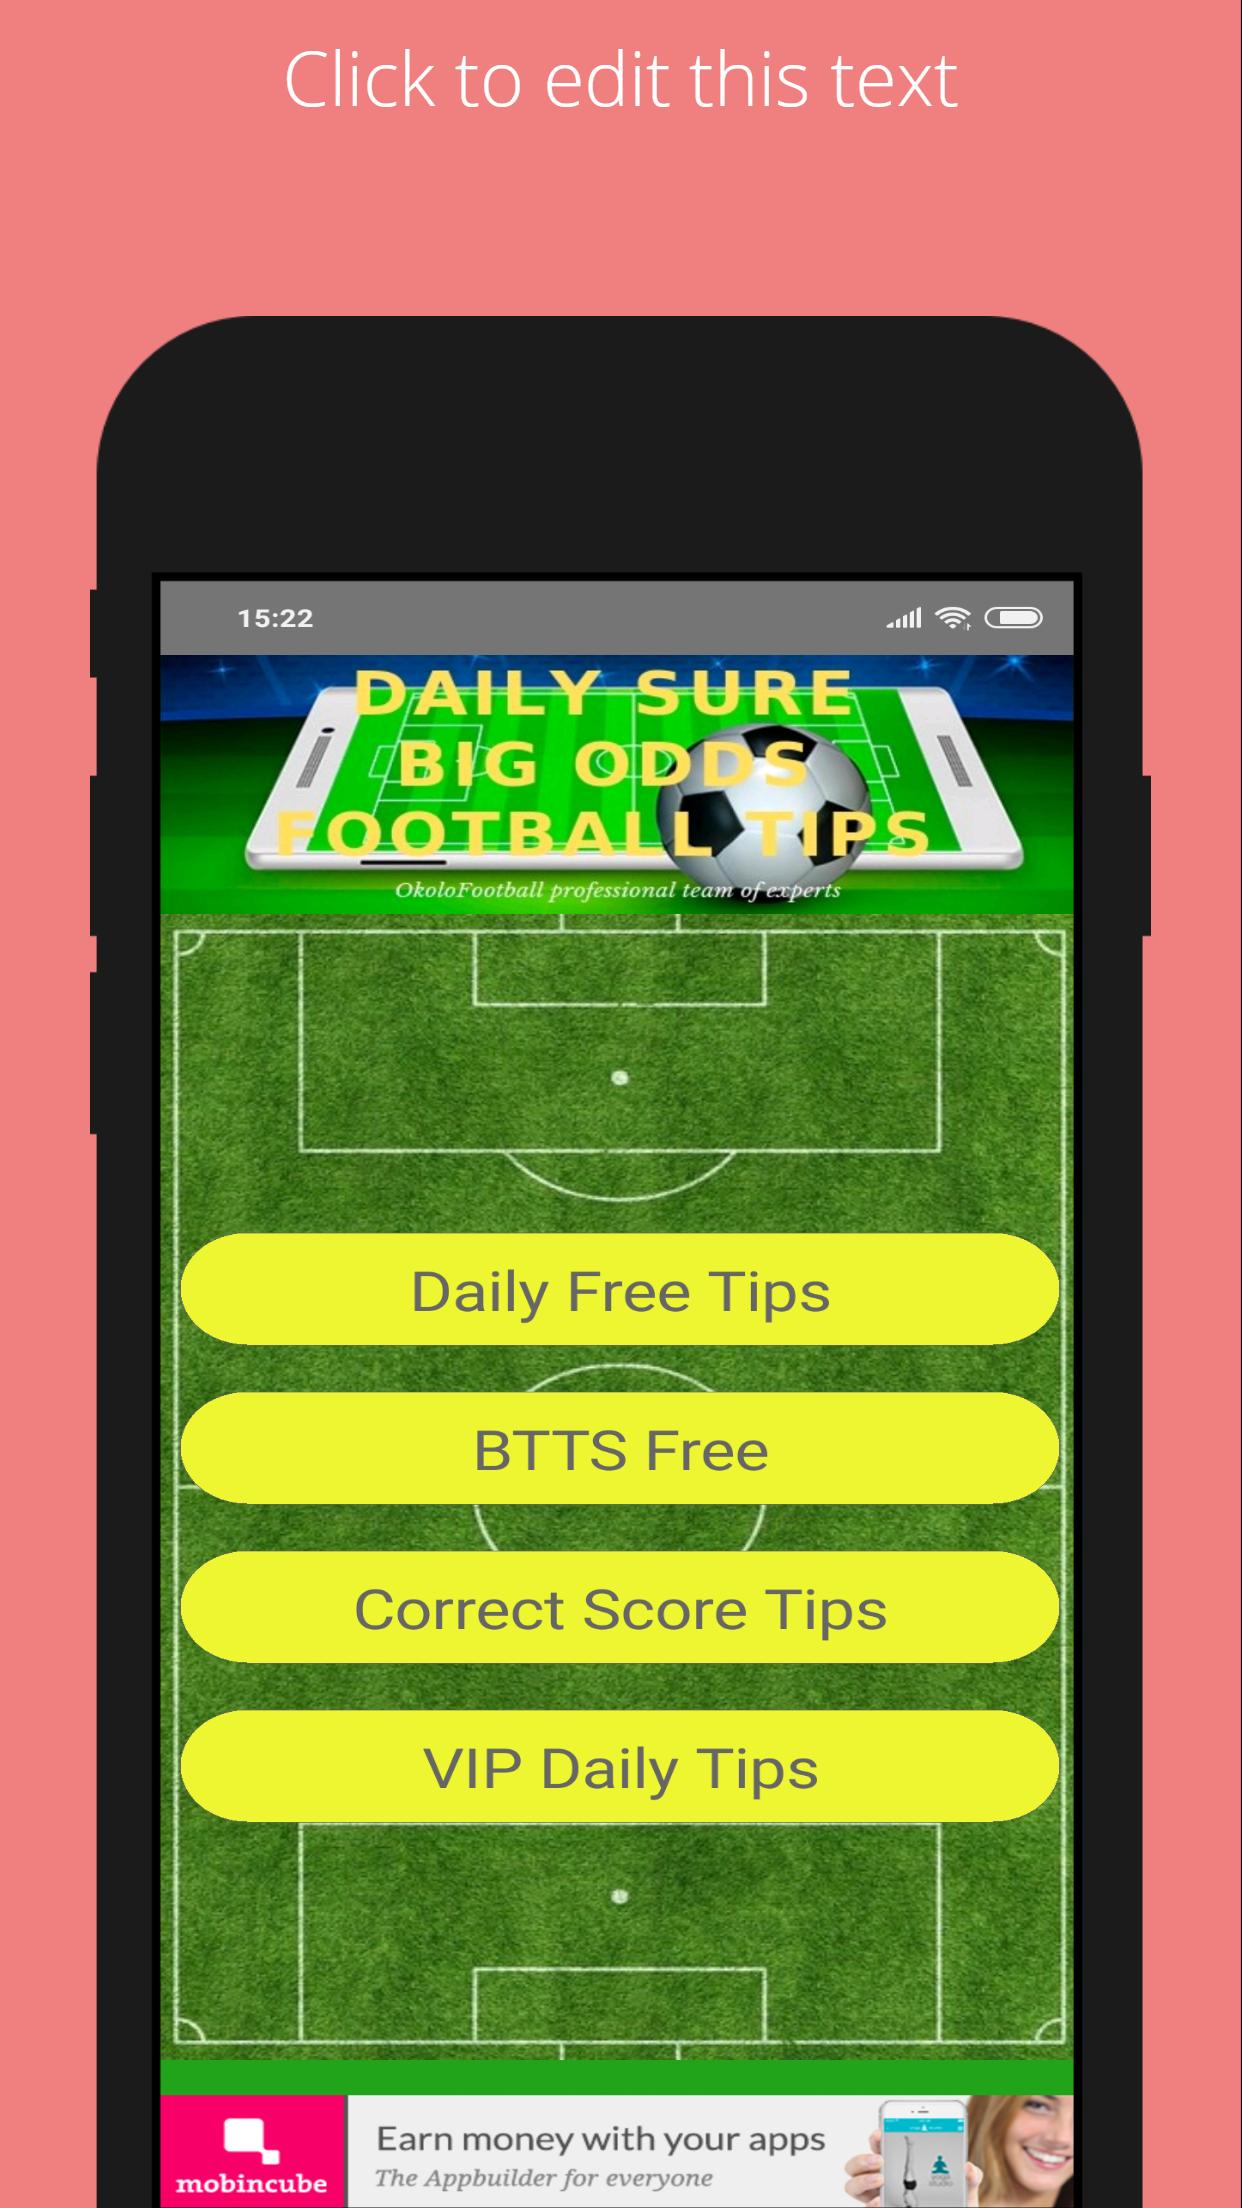 Best sure bets on btts betting on football 101 for kids